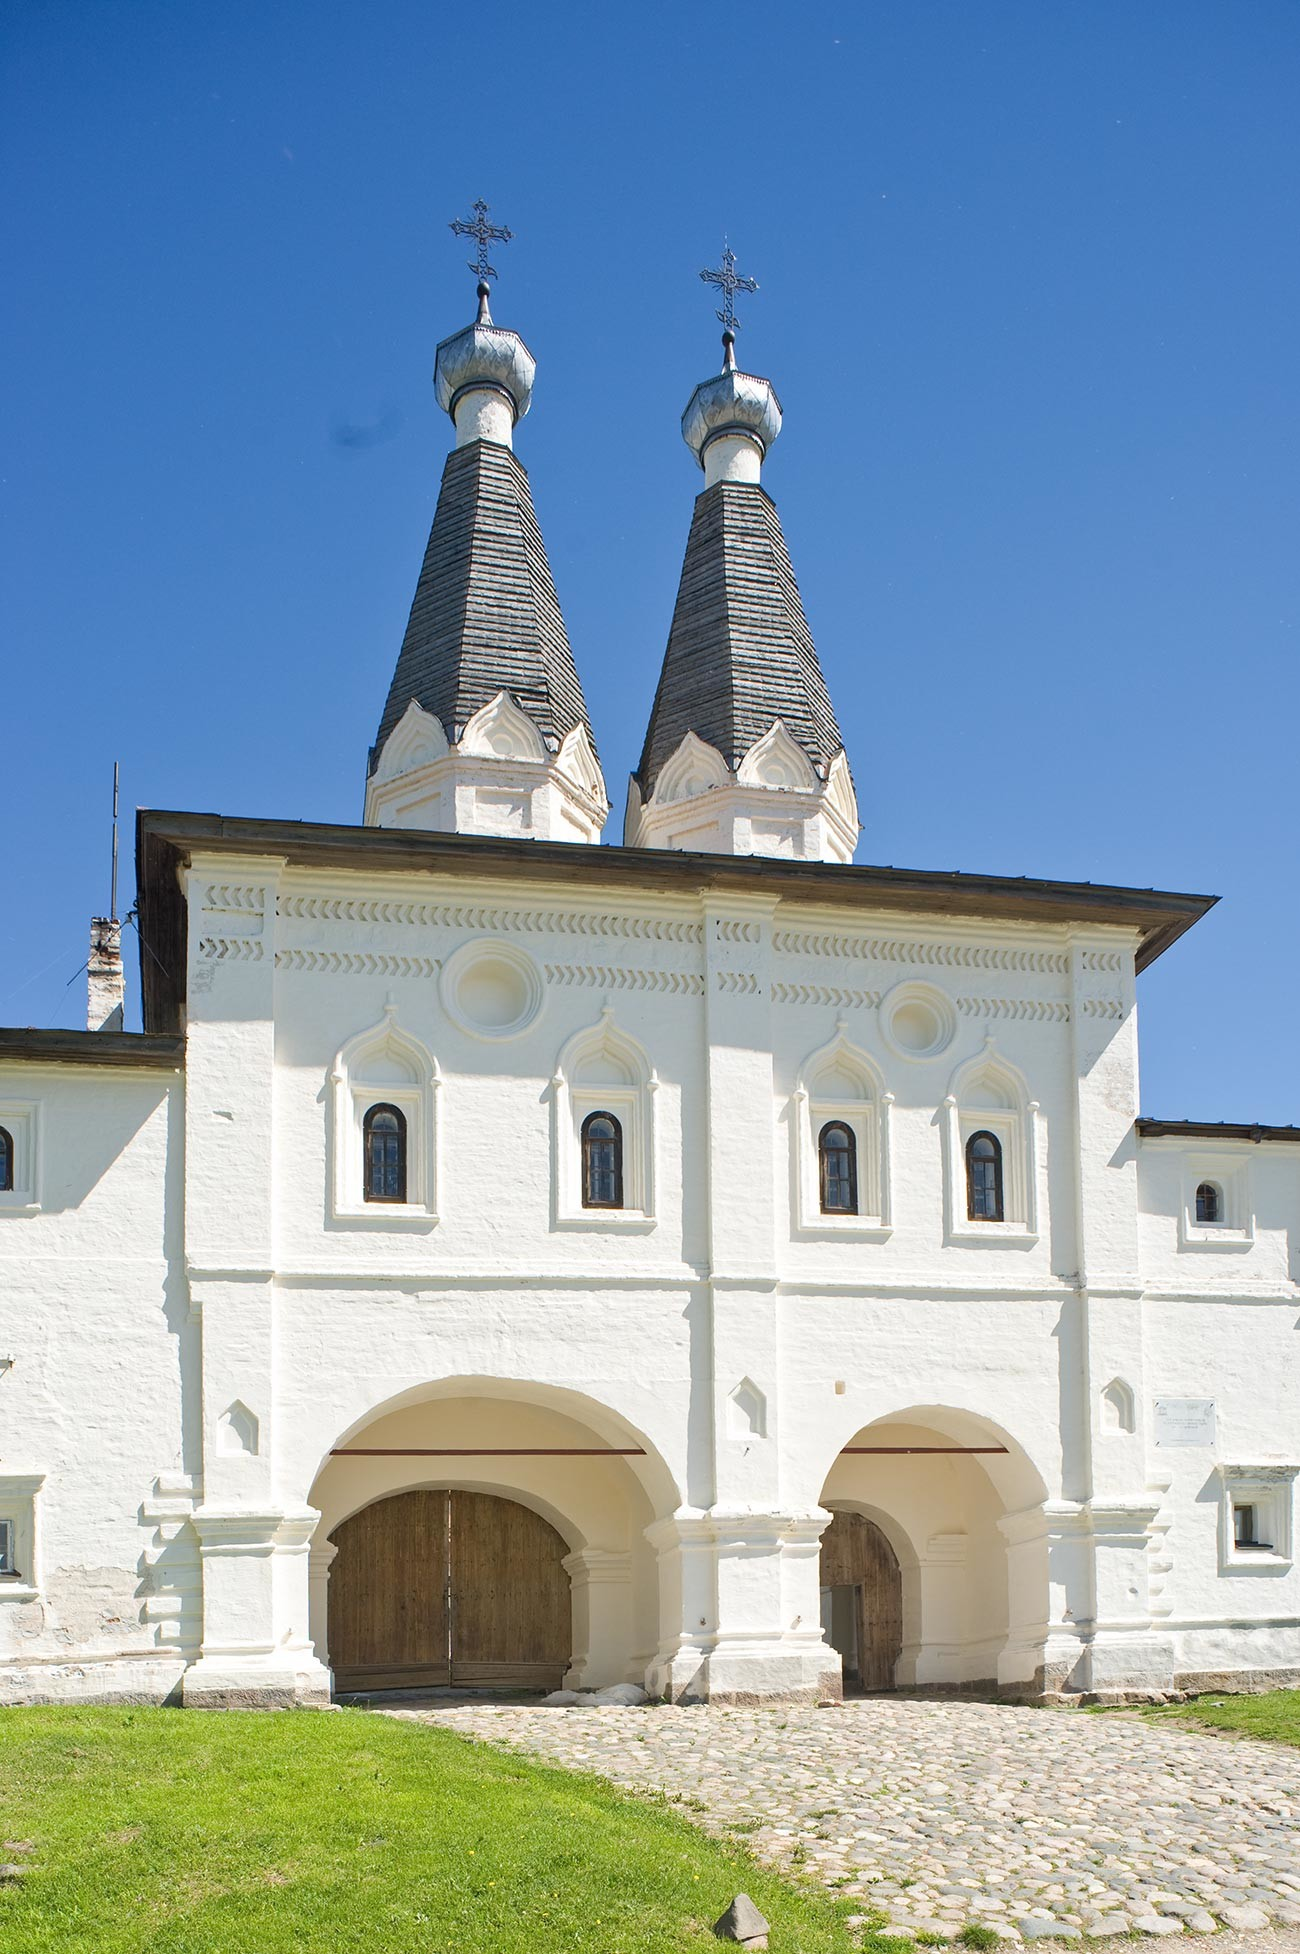 Ferapontov Monastery. Holy Gate with Churches of Epiphany & St. Ferapont. West view. June 1, 2014